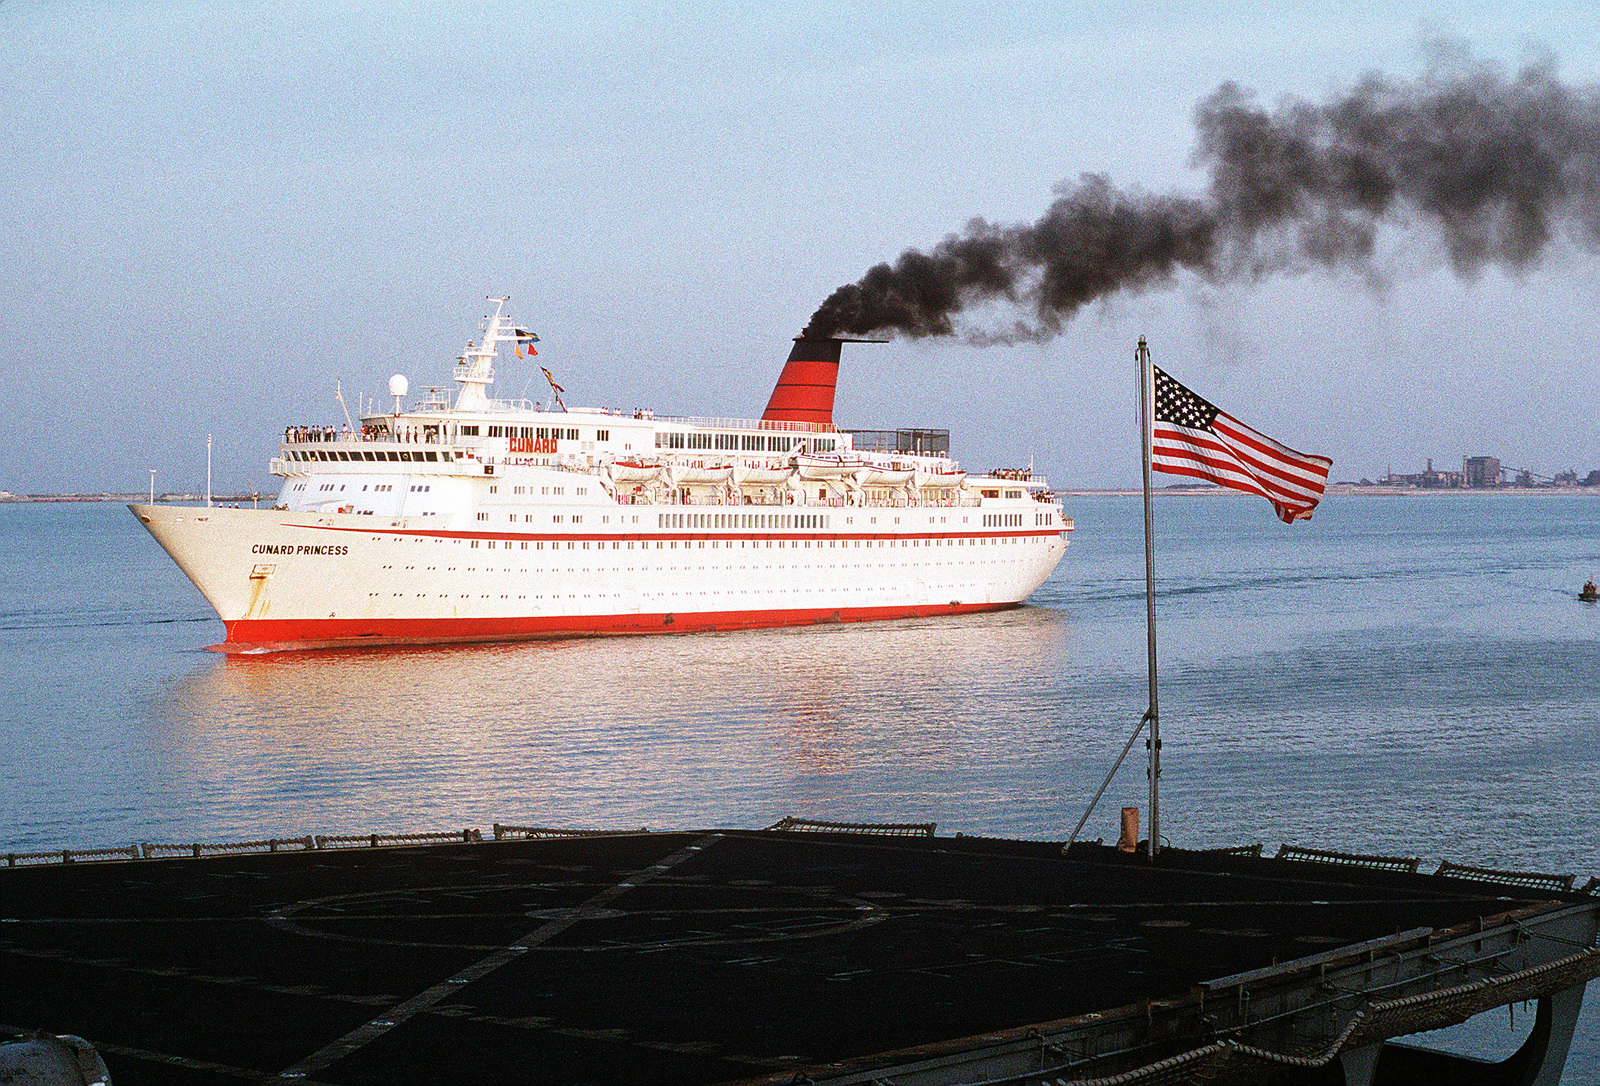 The British passenger liner Cunard Princess passes a U.S. Navy ship during Operation Desert Shield. The Cunard Princess is being used as a rest and relaxation vessel for Allied forces during Operation Desert Shield